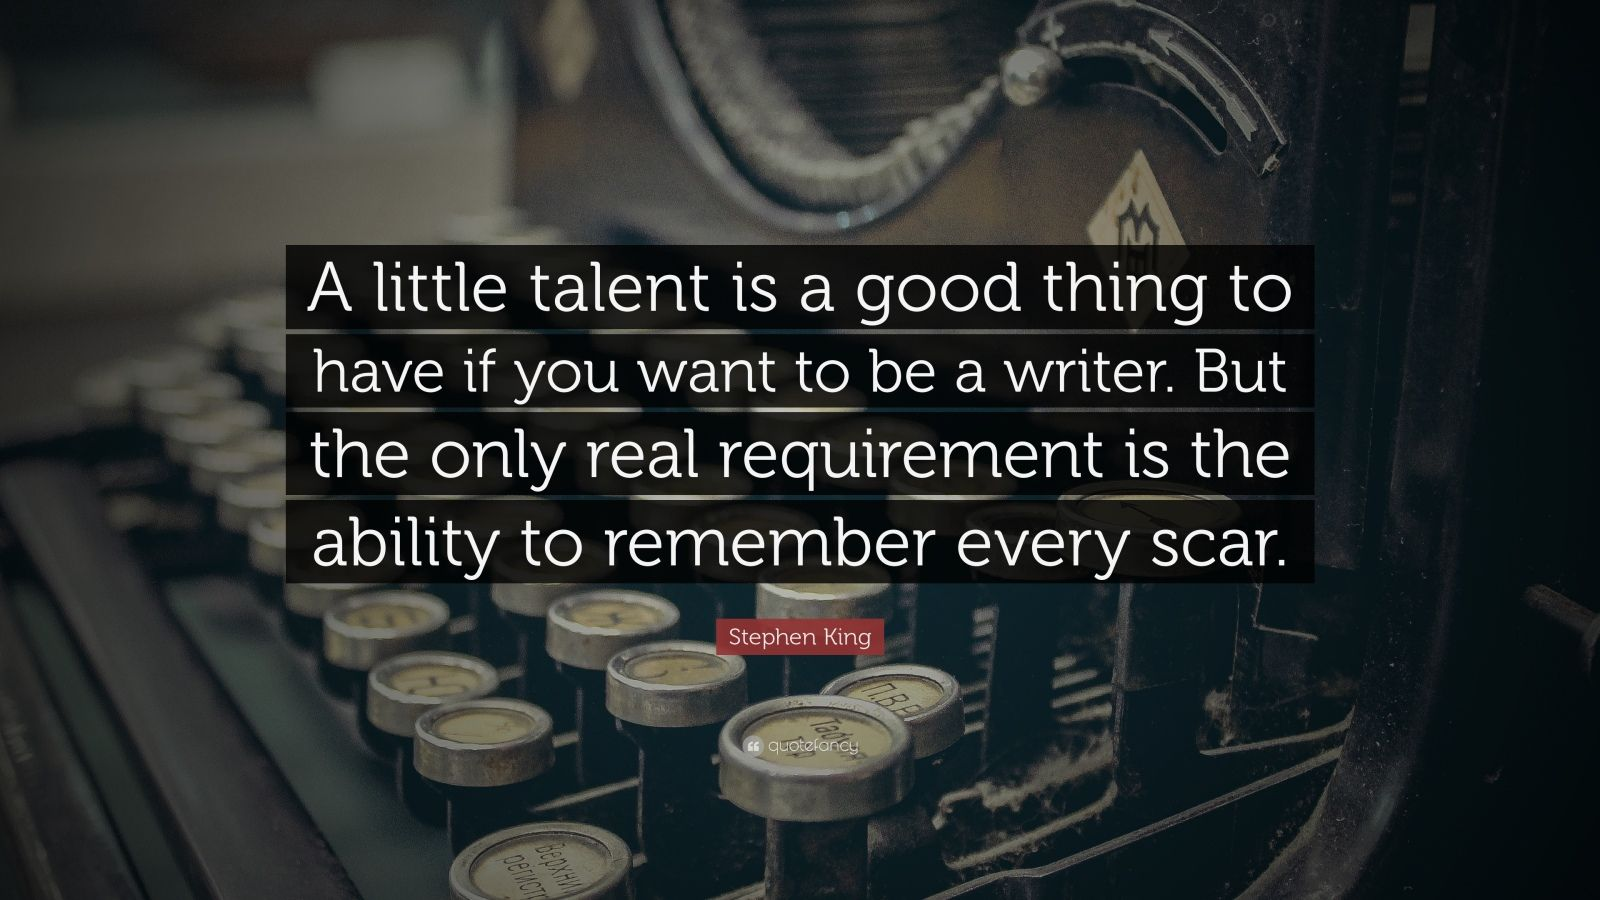 """Stephen King Quote: """"A little talent is a good thing to have if you want to be a writer. But the only real requirement is the ability to remember every scar."""""""